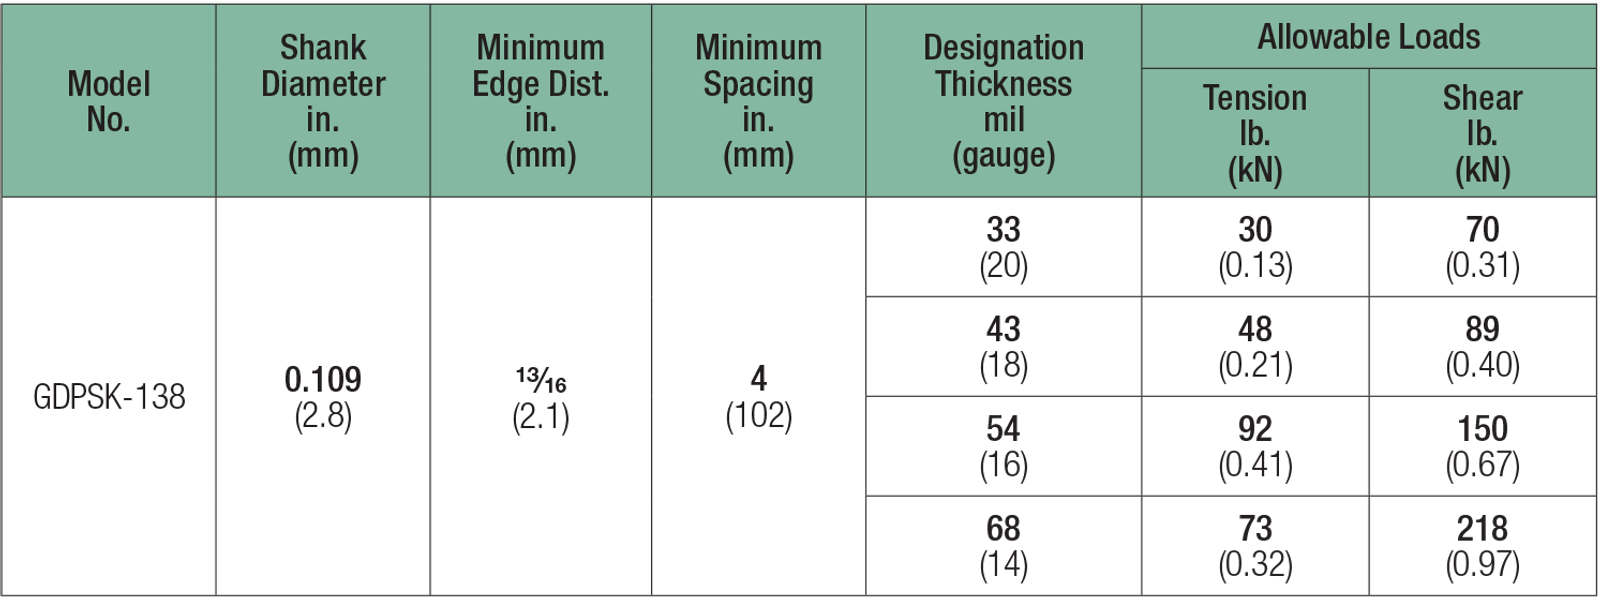 Table: Spiral Knurl Pin Allowable Tension and Shear Loads in Cold-Formed Steel Studs